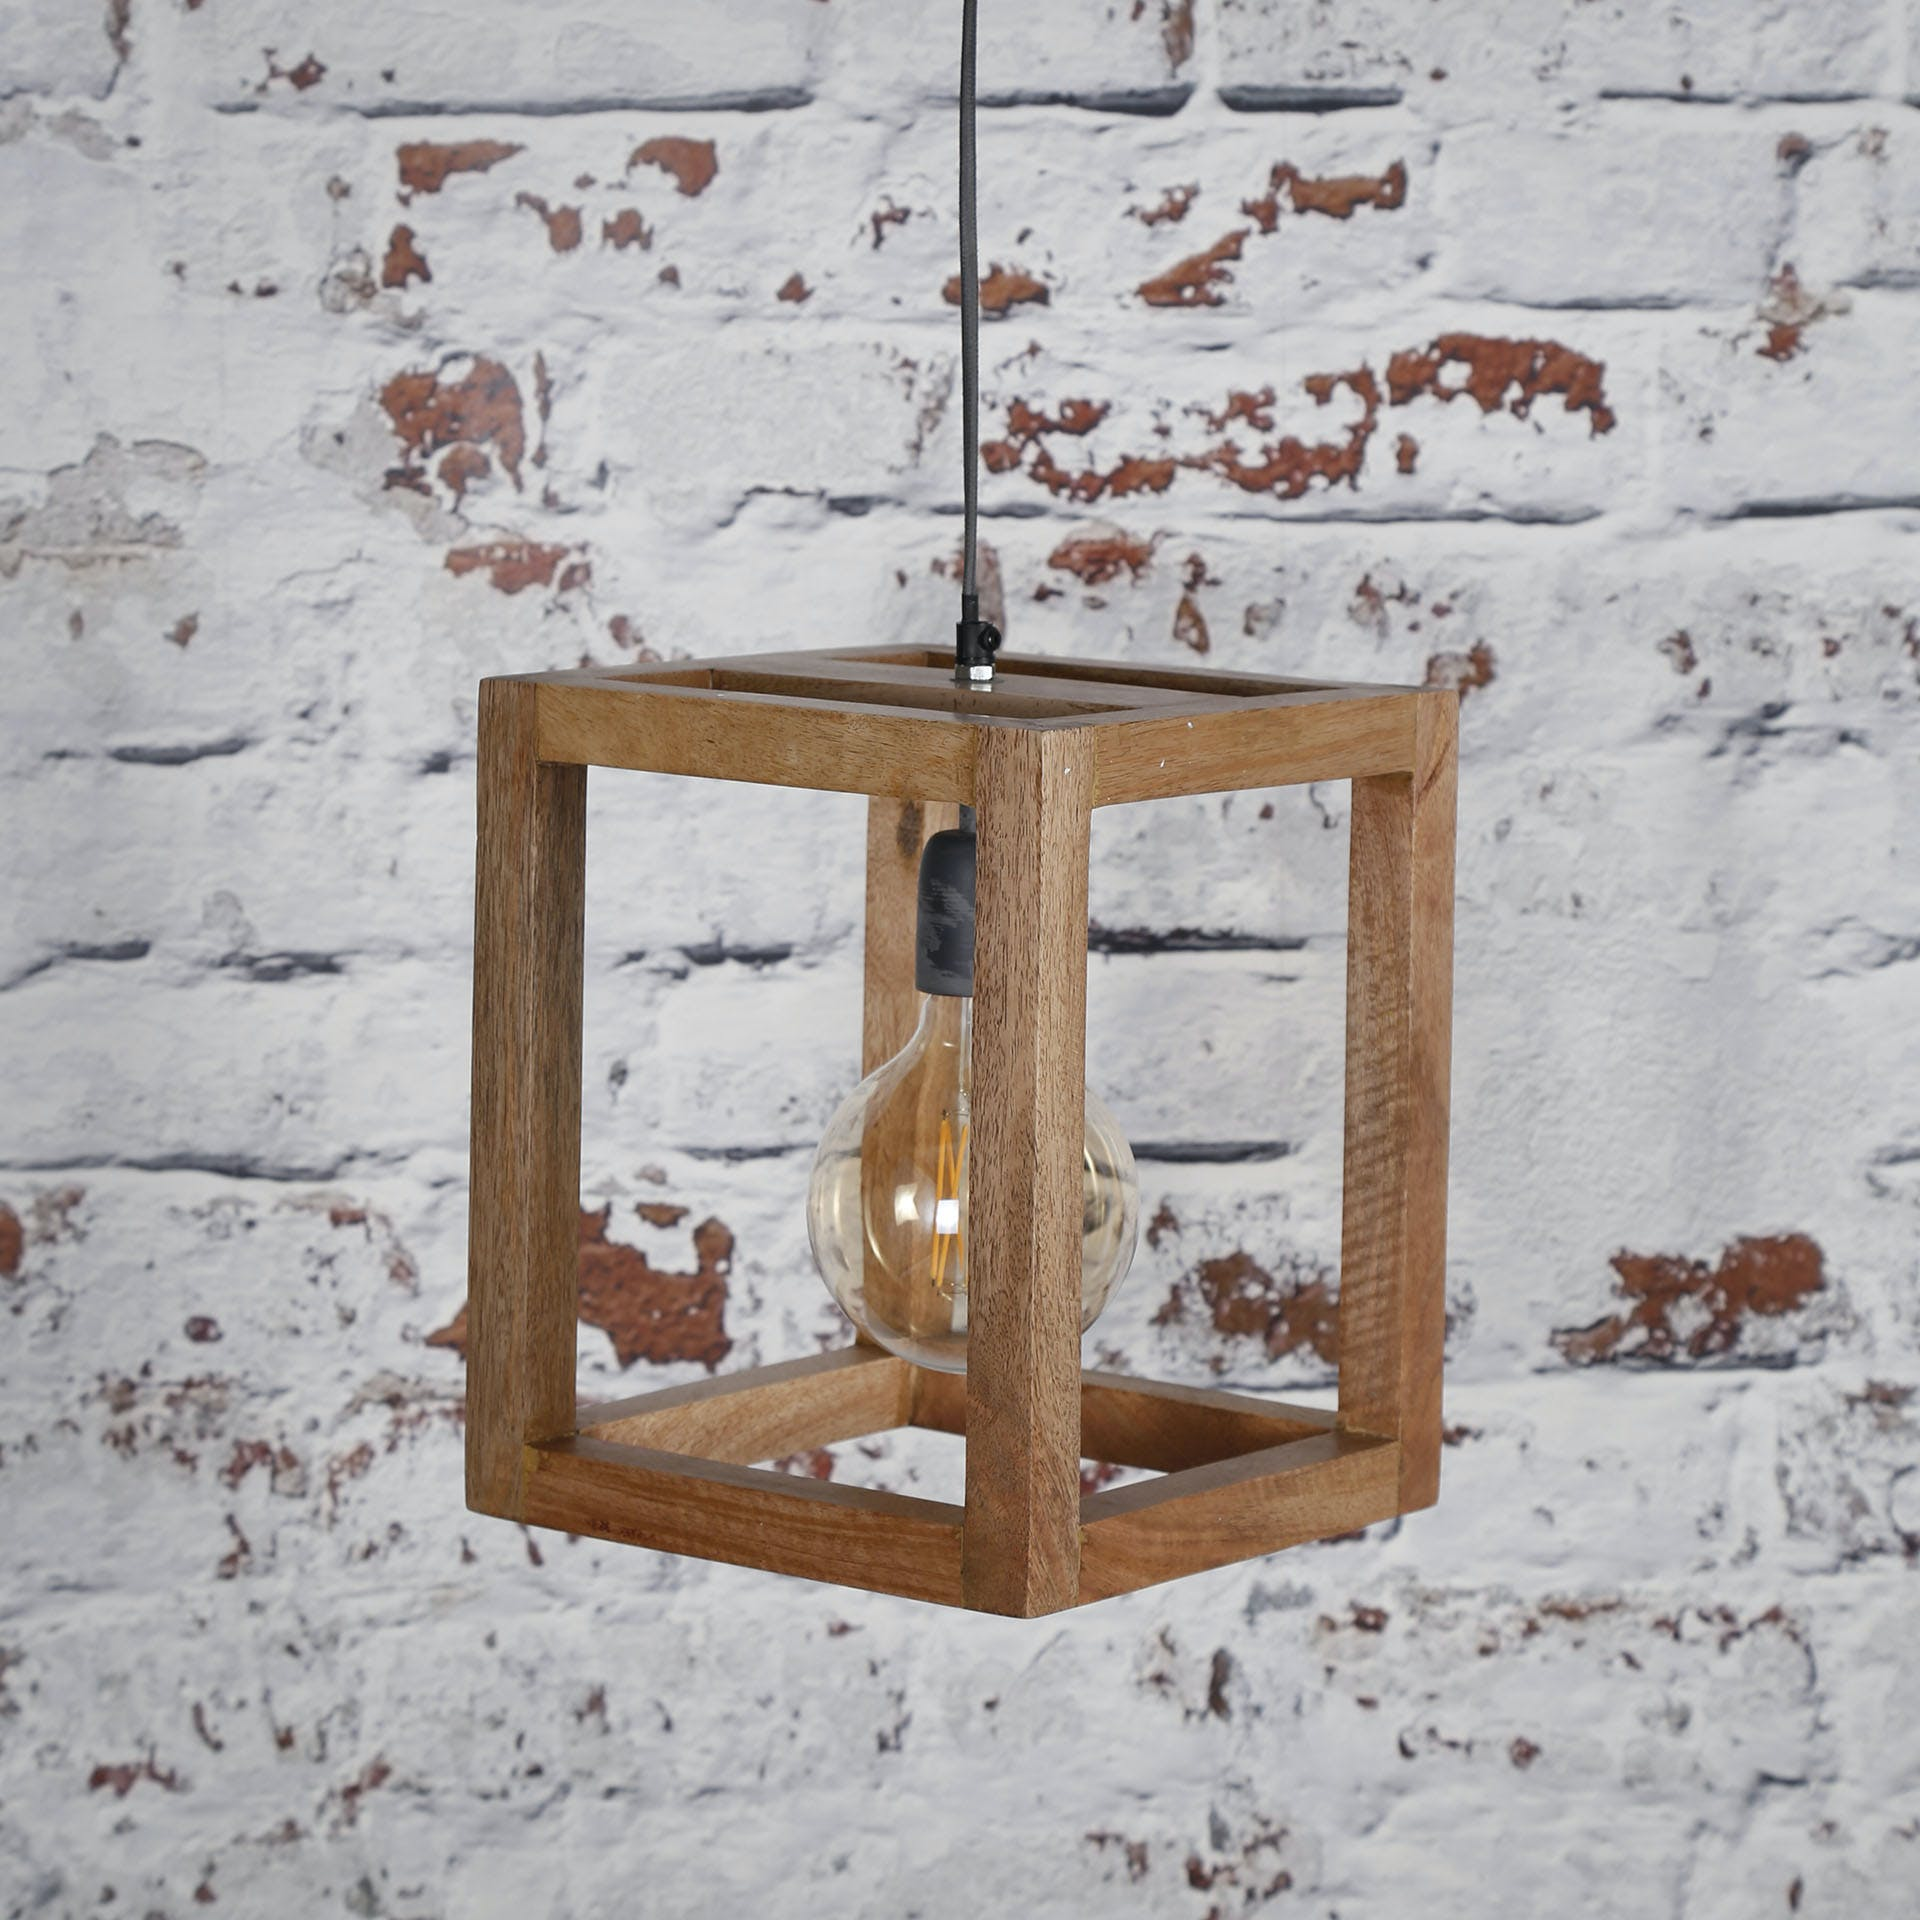 Suspension contemporaine cadre bois de manguier 1 lampe DELHI